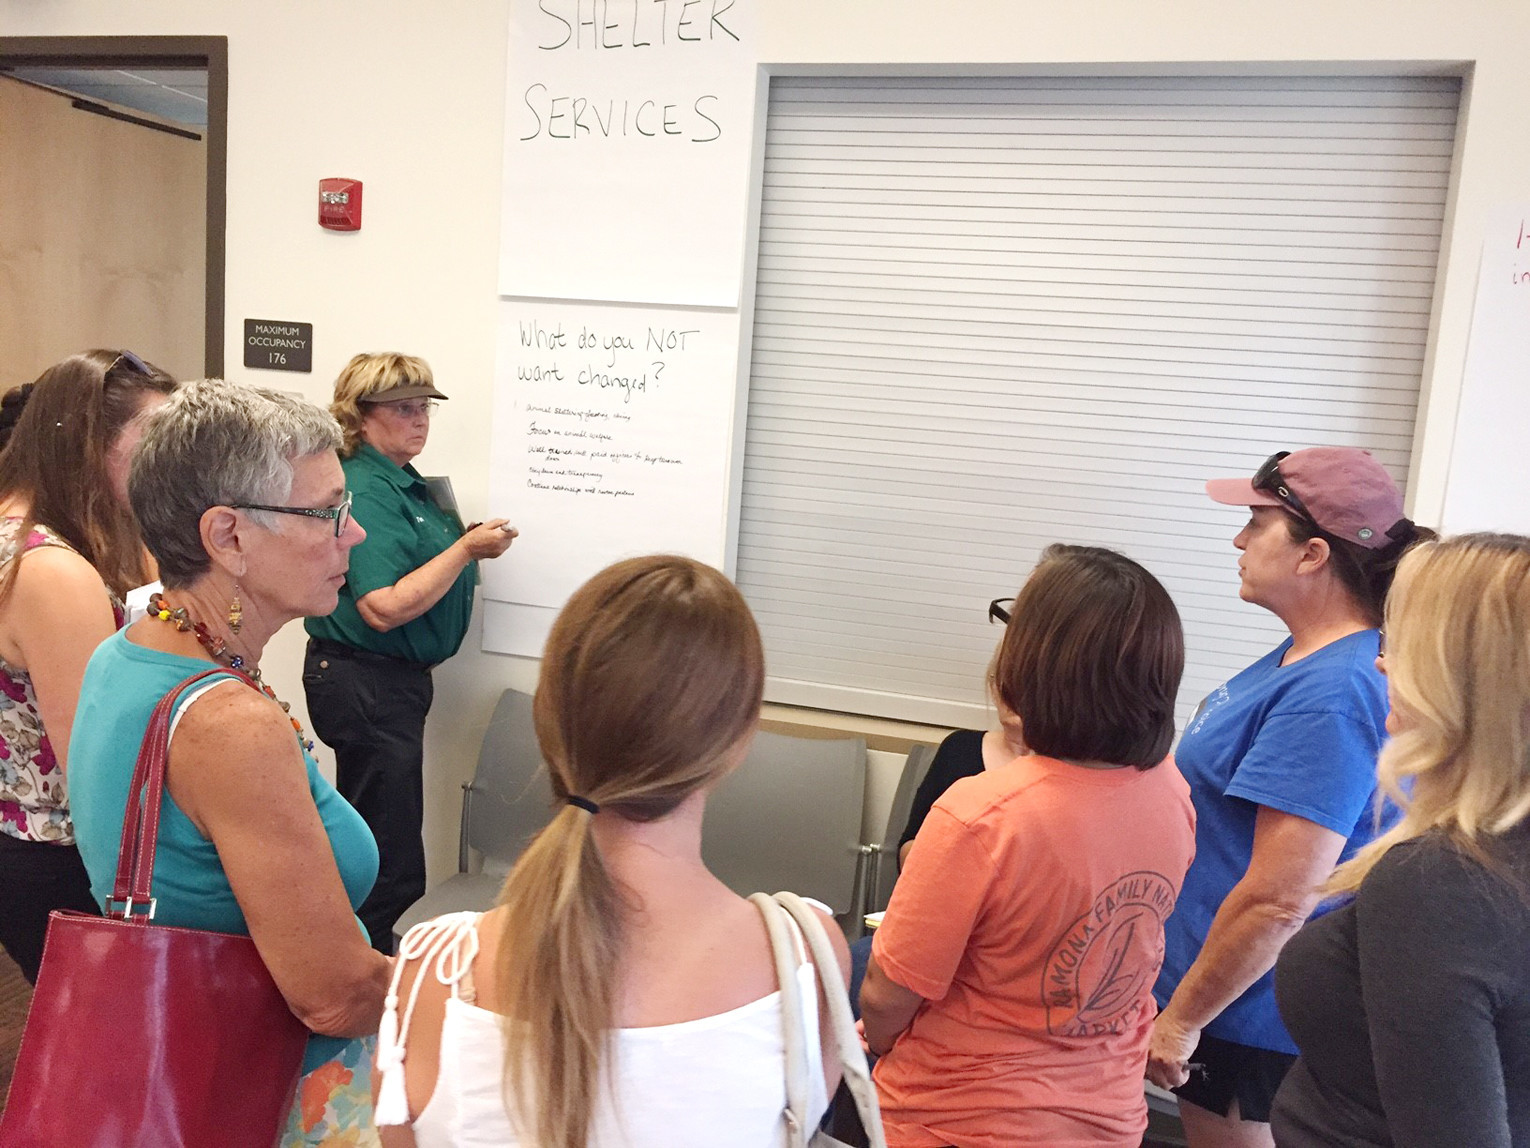 Attendees give their input on shelter services they do not want changed as resident Terri Halverson writes them down.